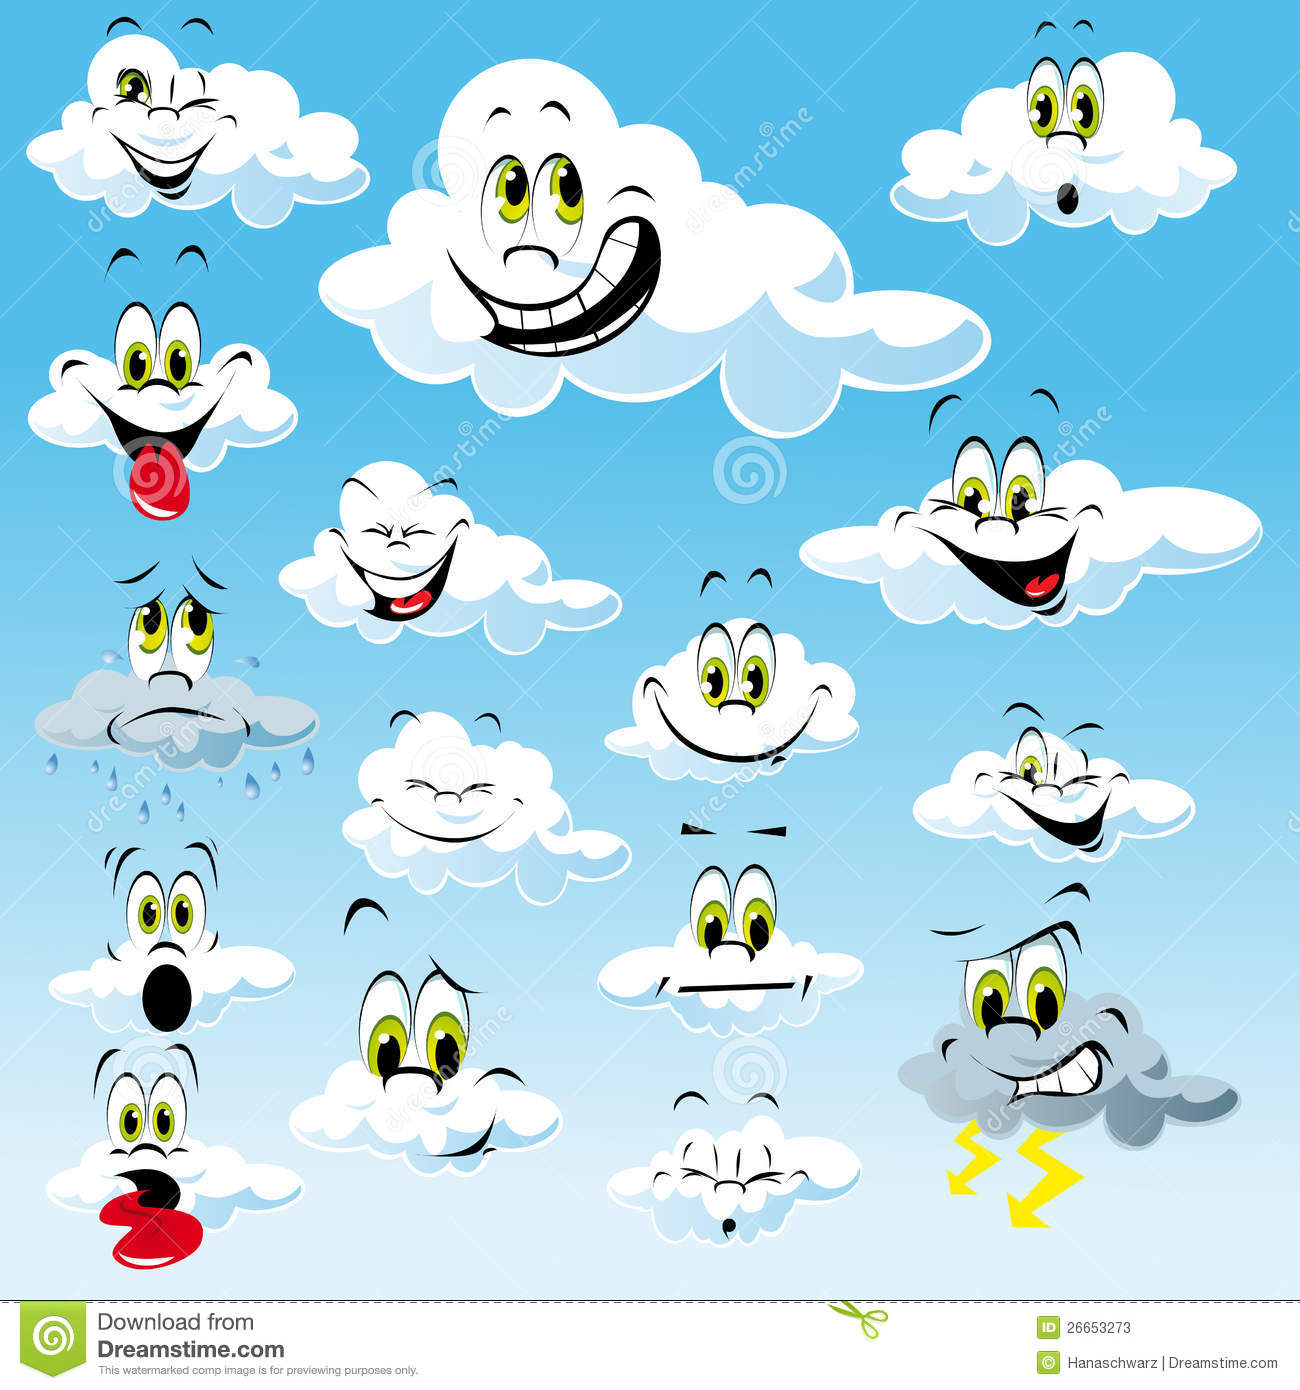 Collection of clouds with cartoon faces with many different